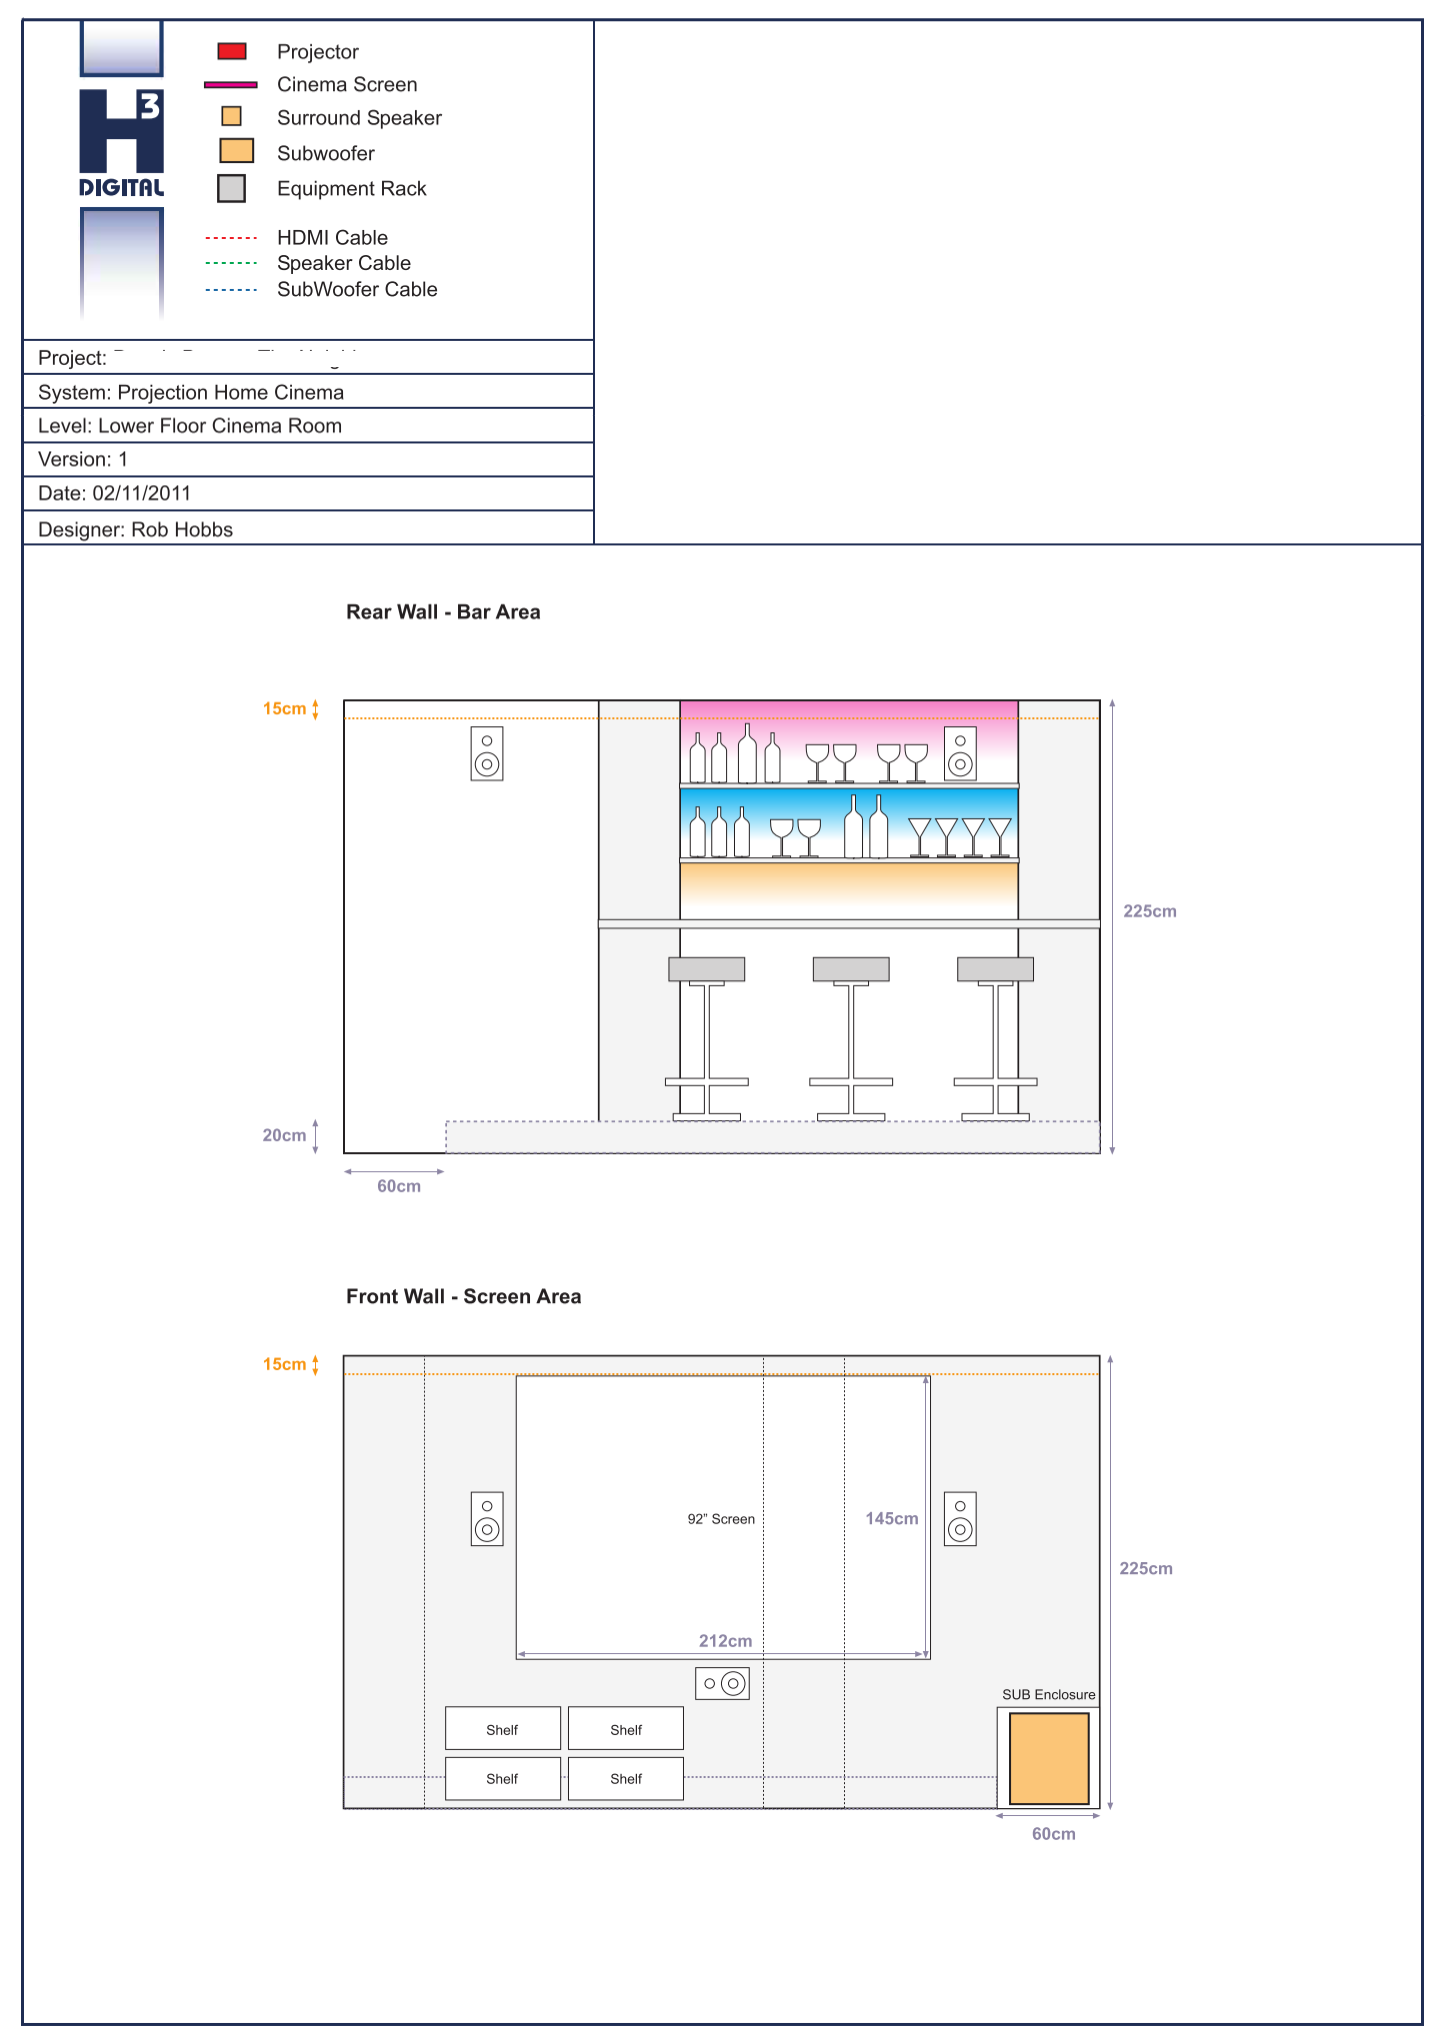 Front and Rear Cinema Design in AutoCAD